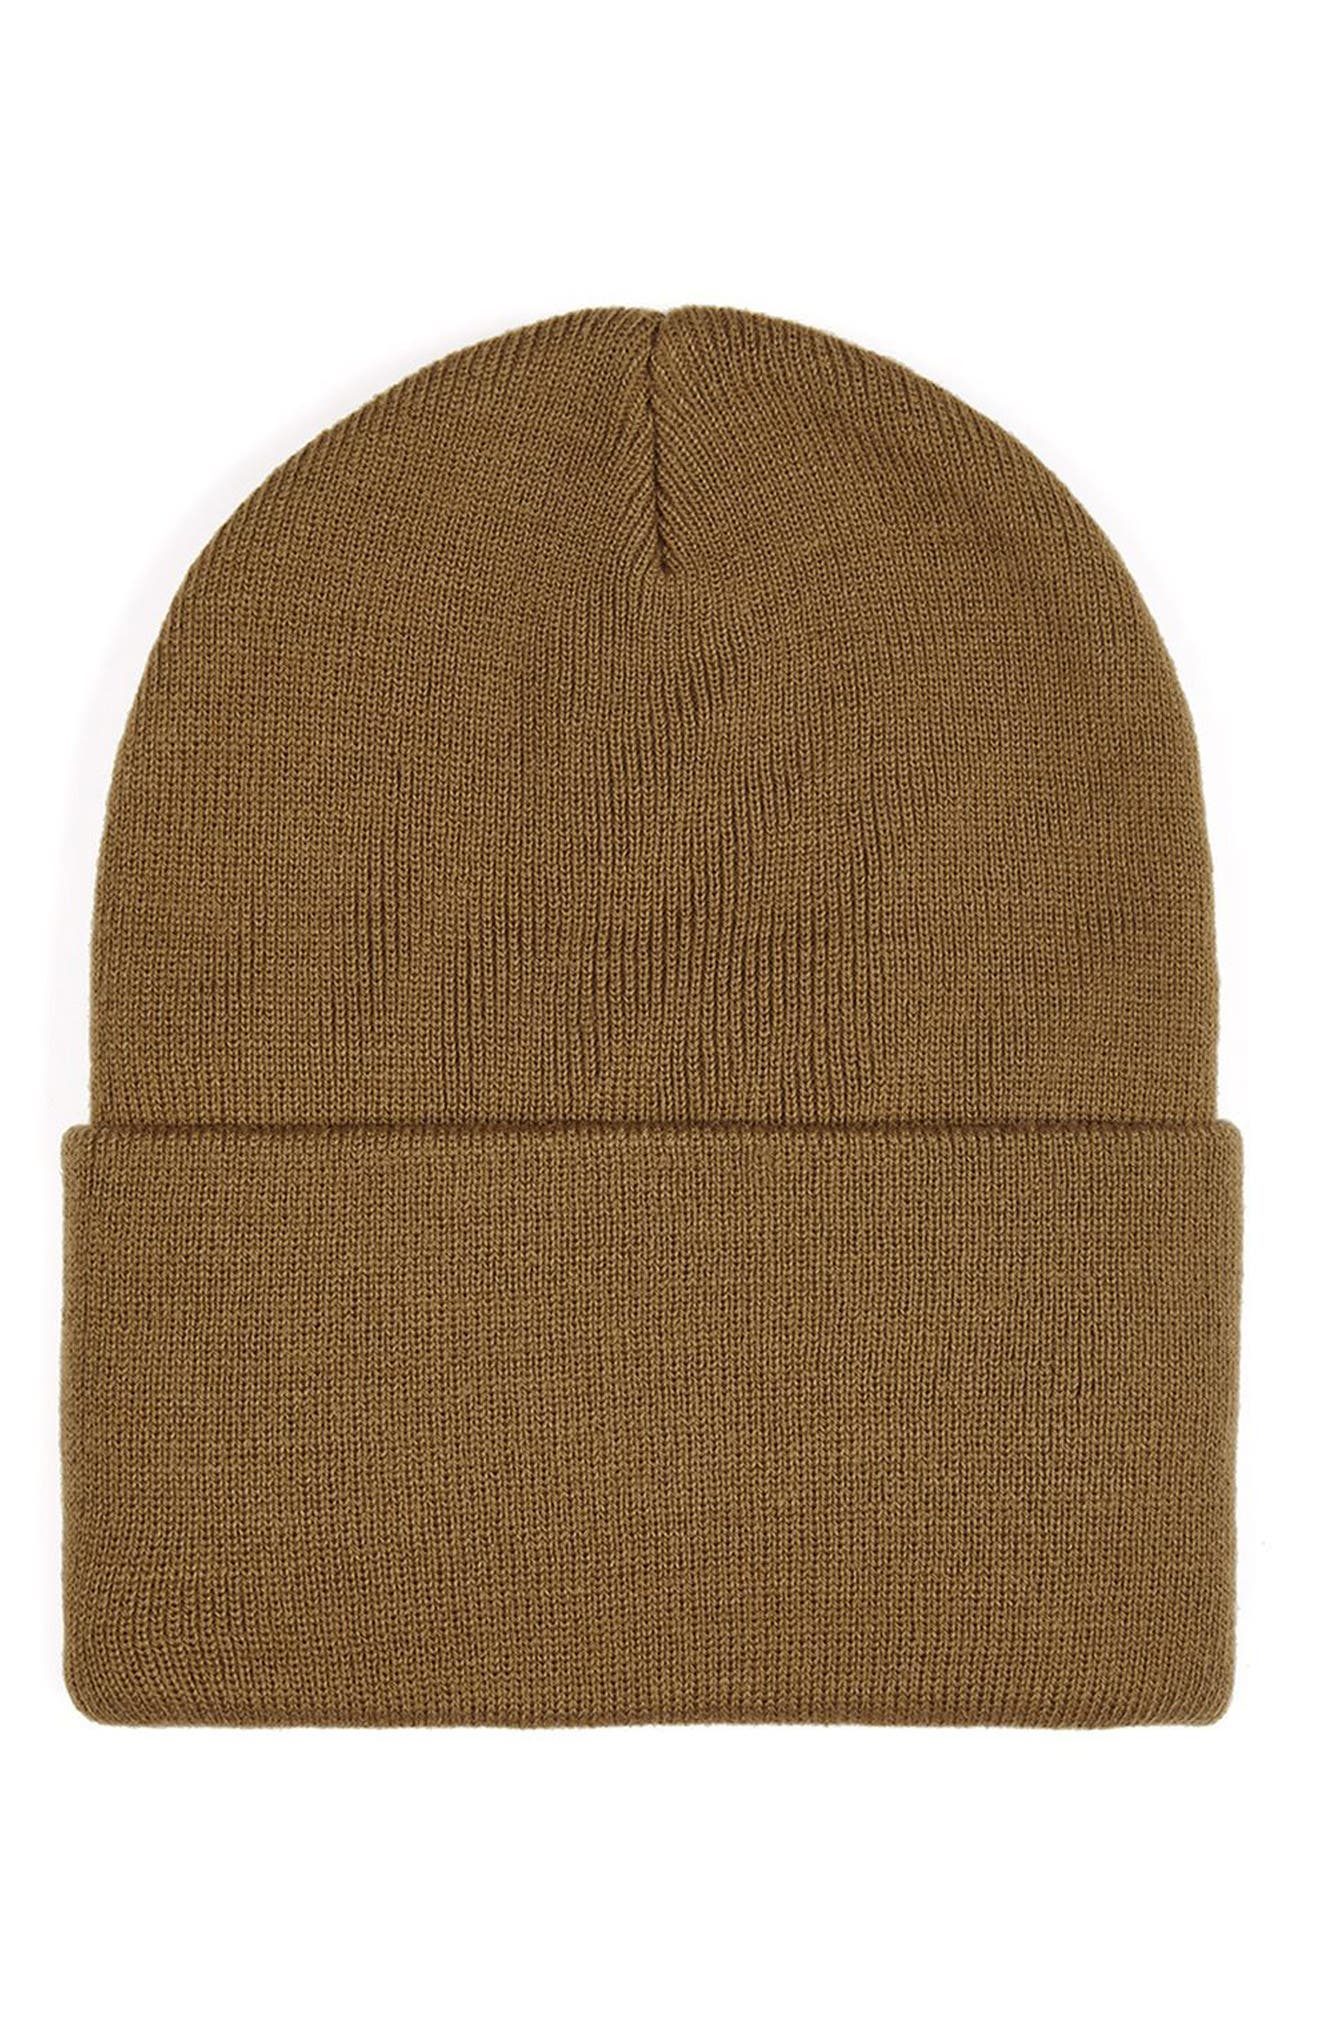 Sports Skater Beanie,                         Main,                         color, 200